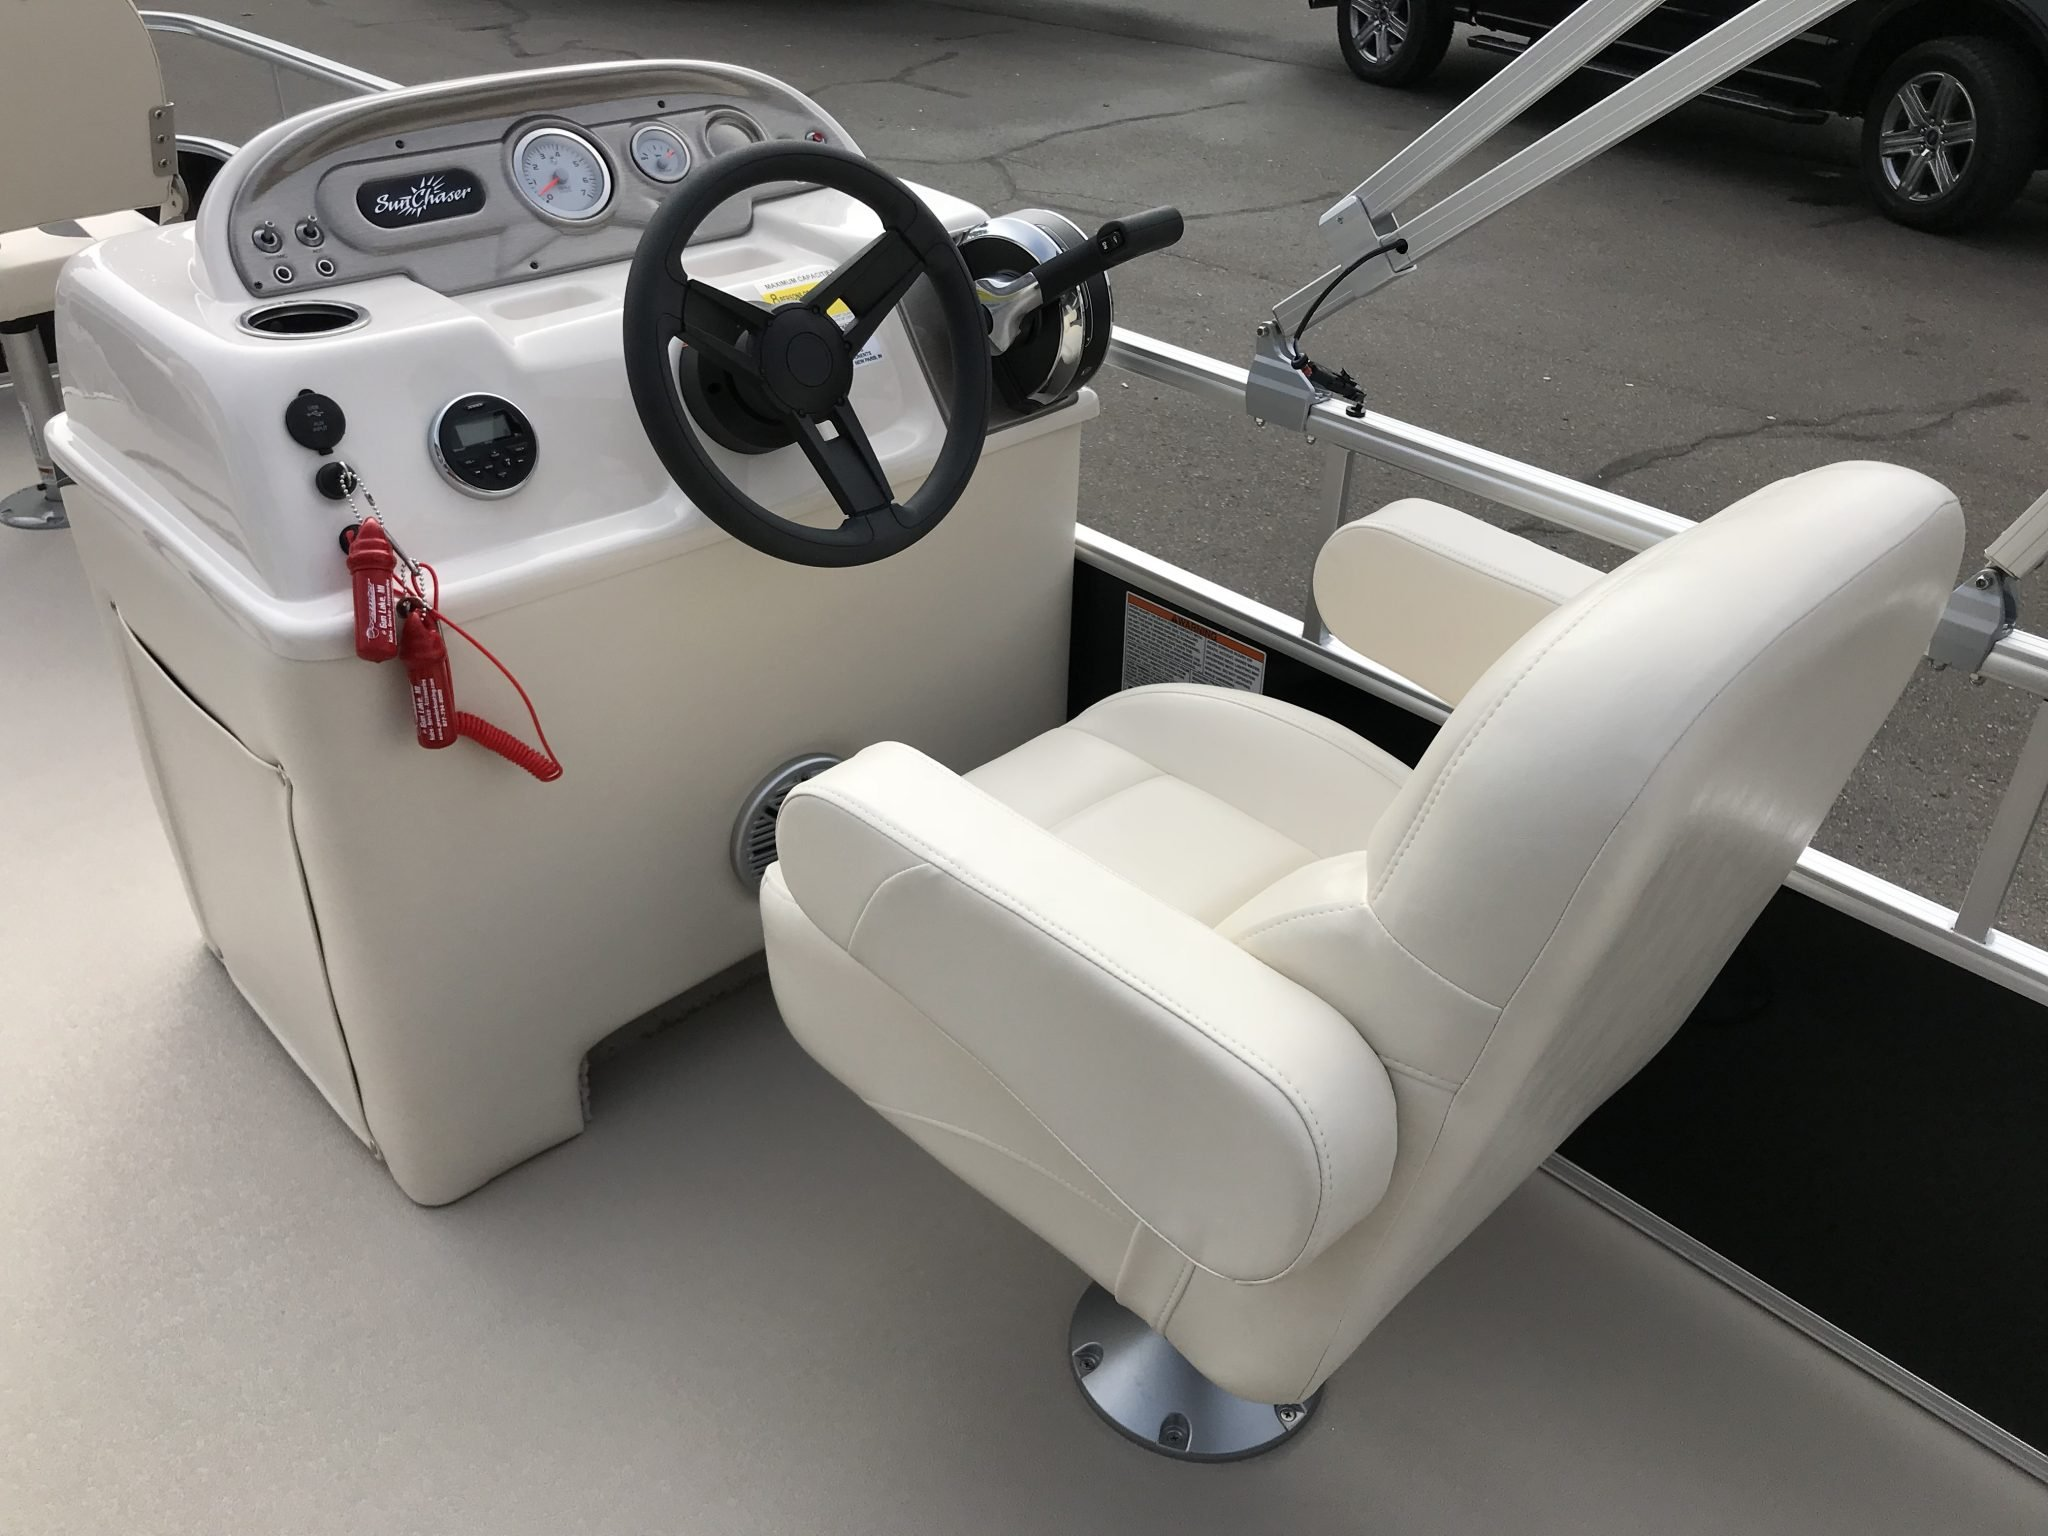 2019 SunChaser 818 4.0 Helm And Captains Chair